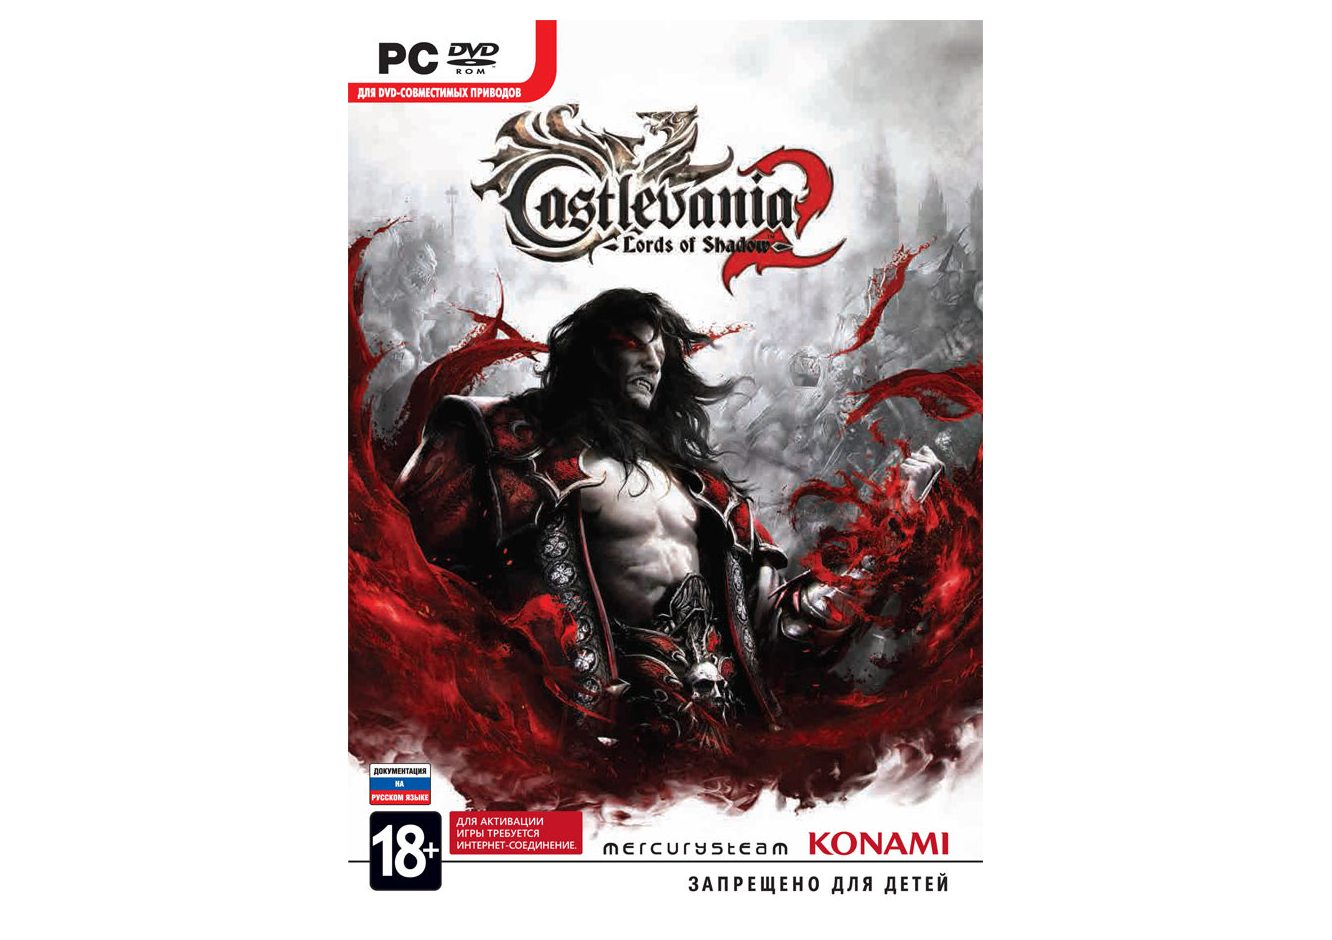 PC Castlevania: Lords of Shadow 2 PC